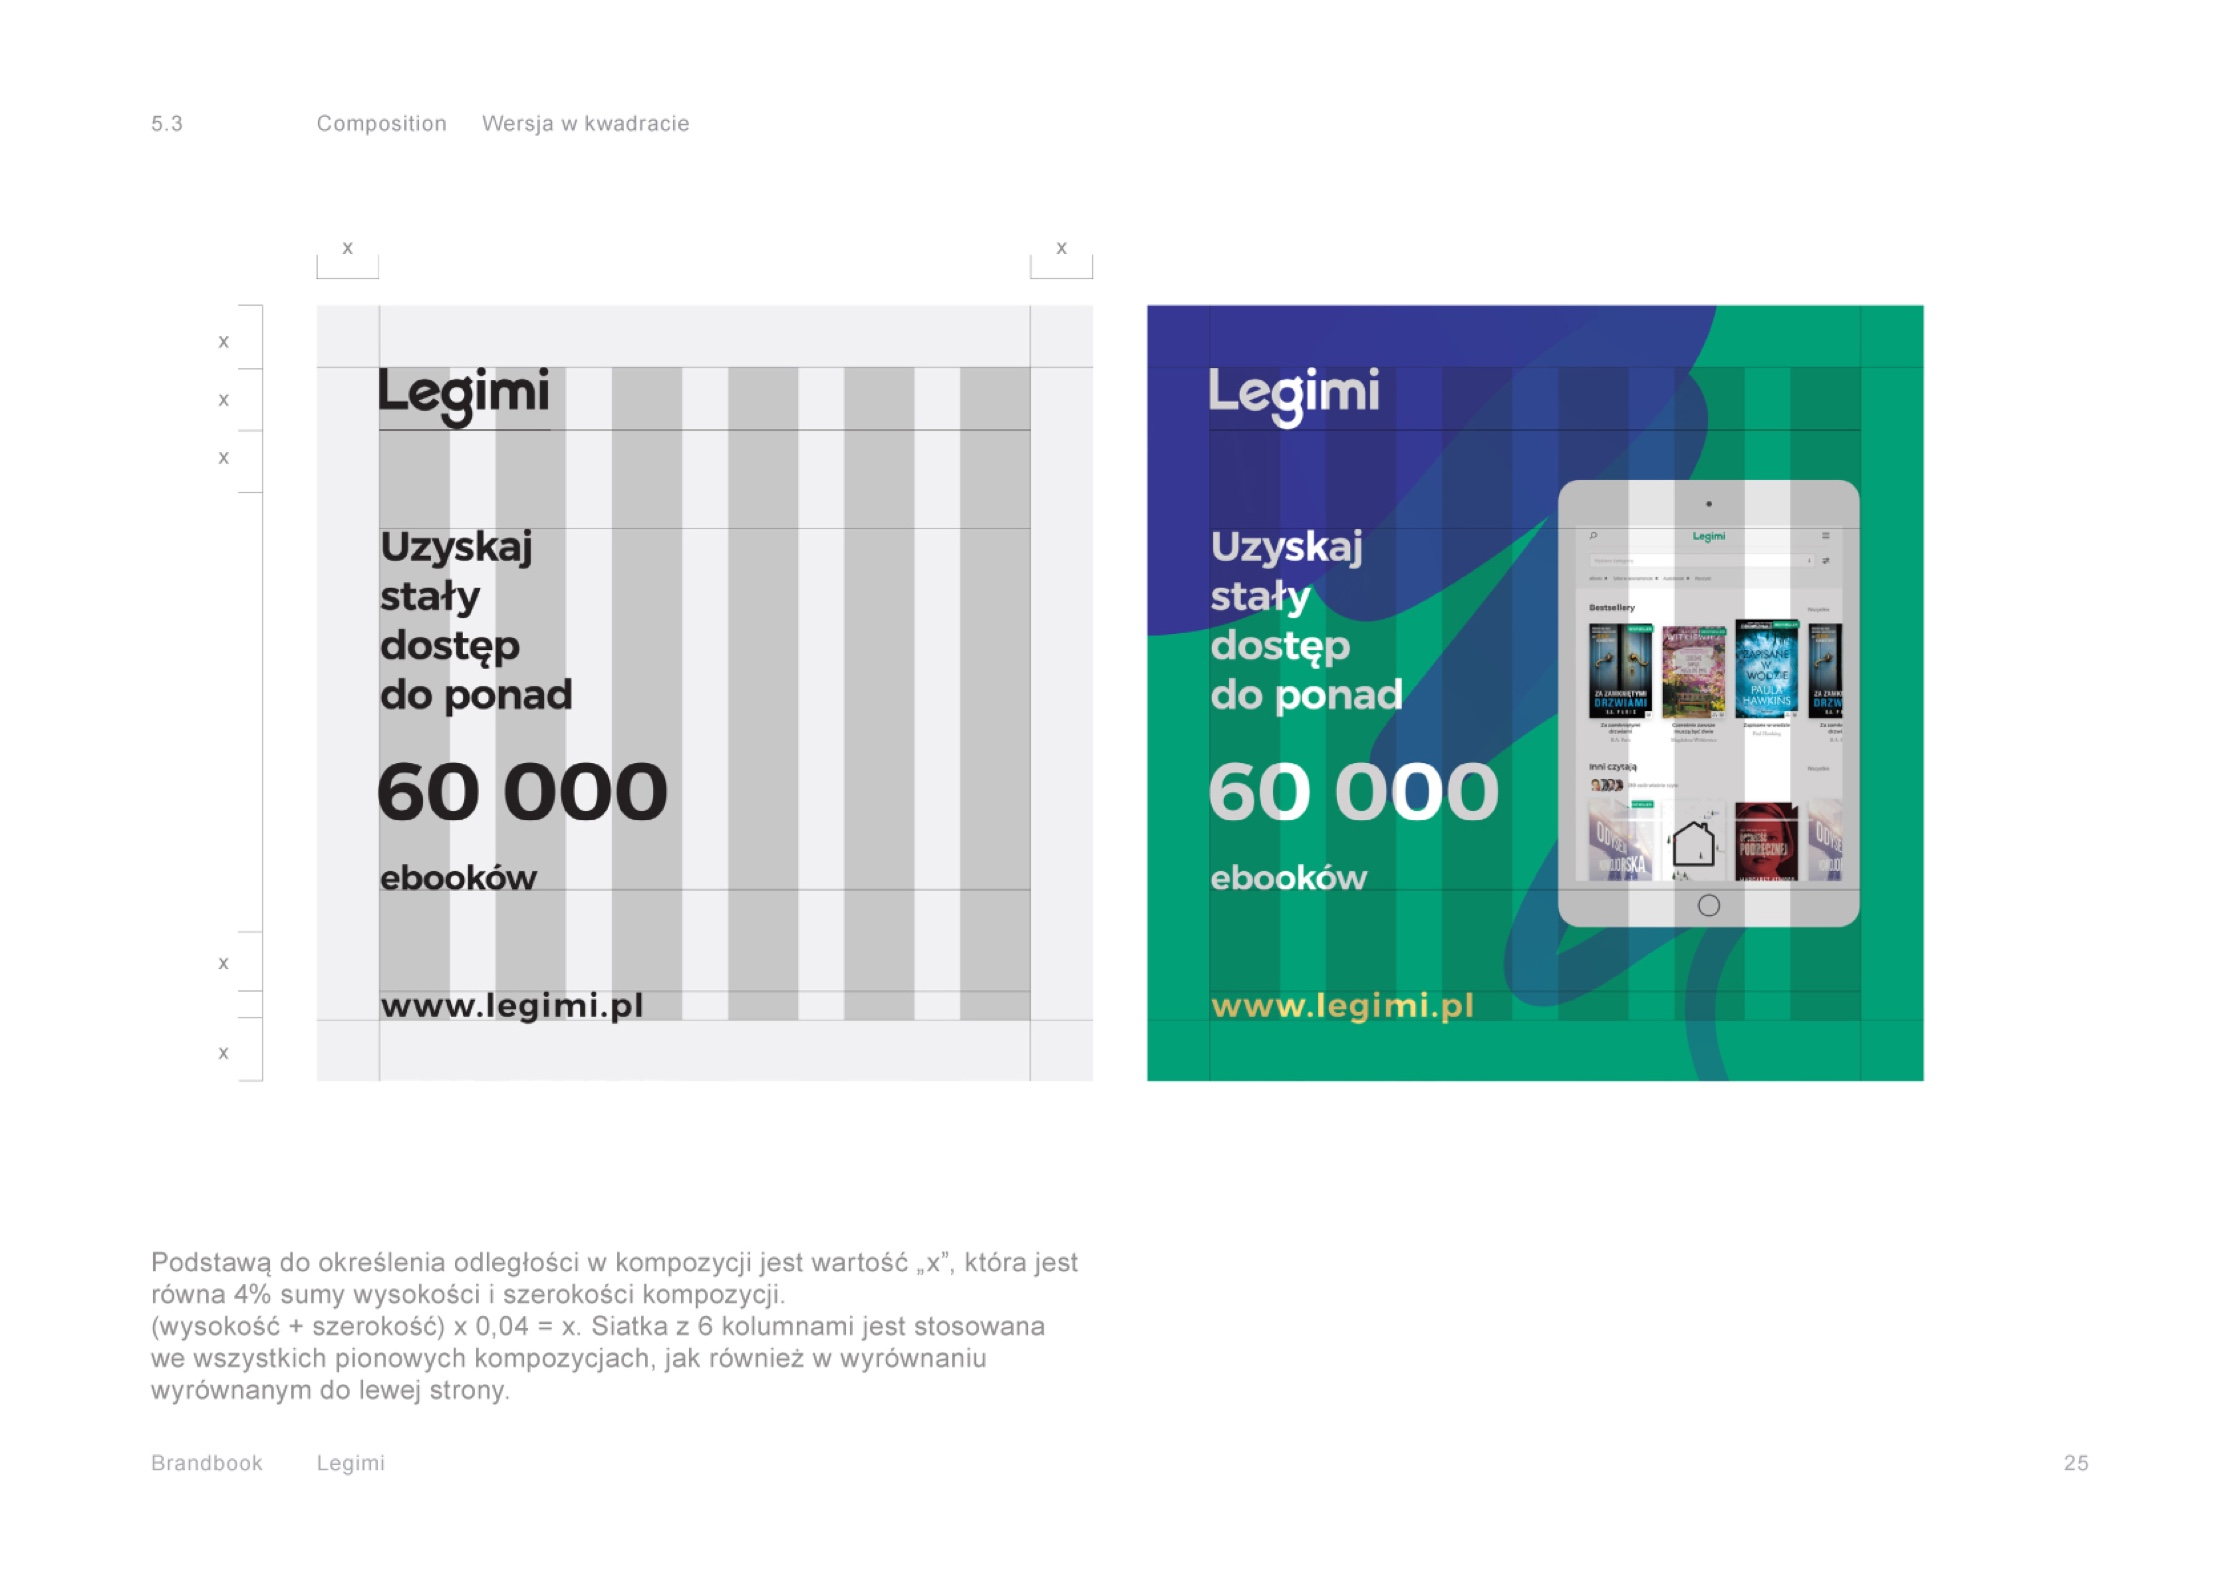 Brandbook - Legimi by Uniforma